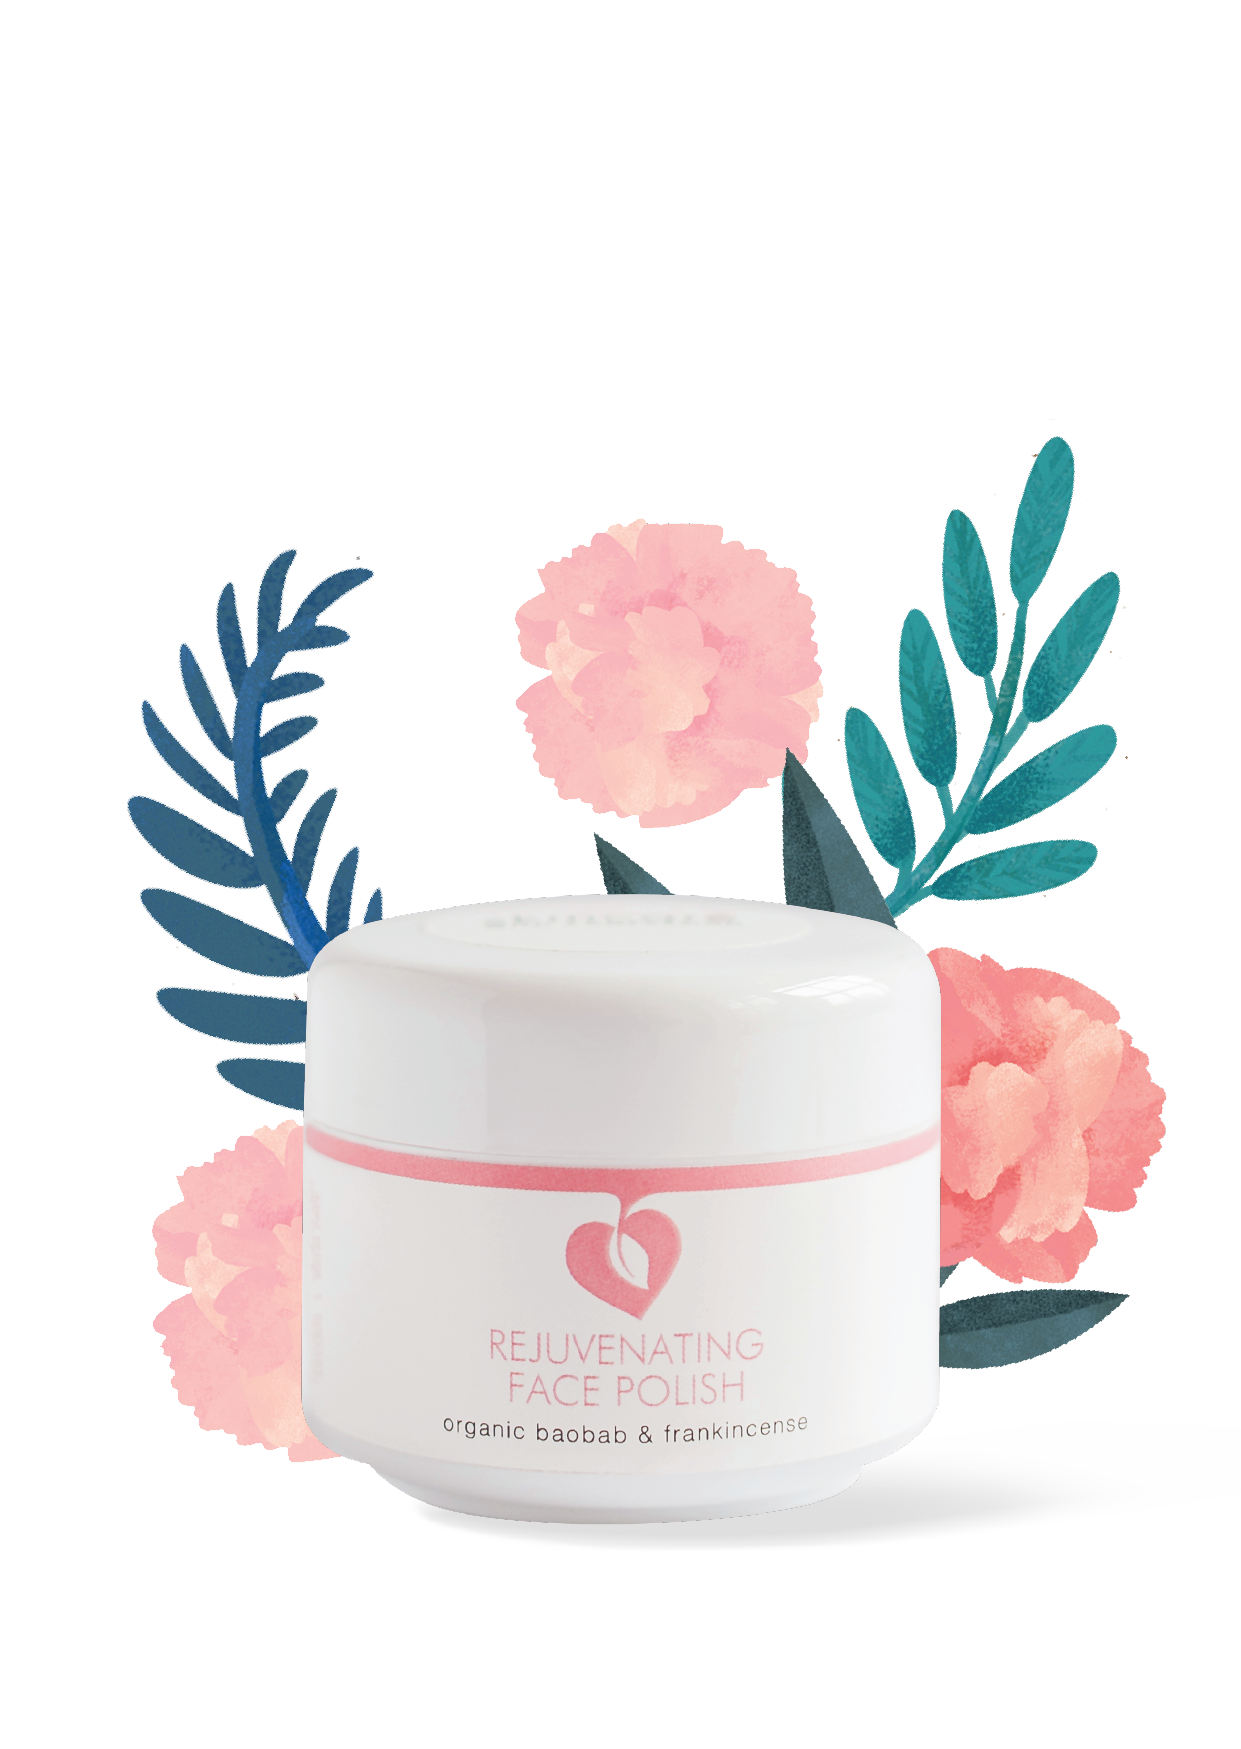 REJUVENATING FACE POLISH